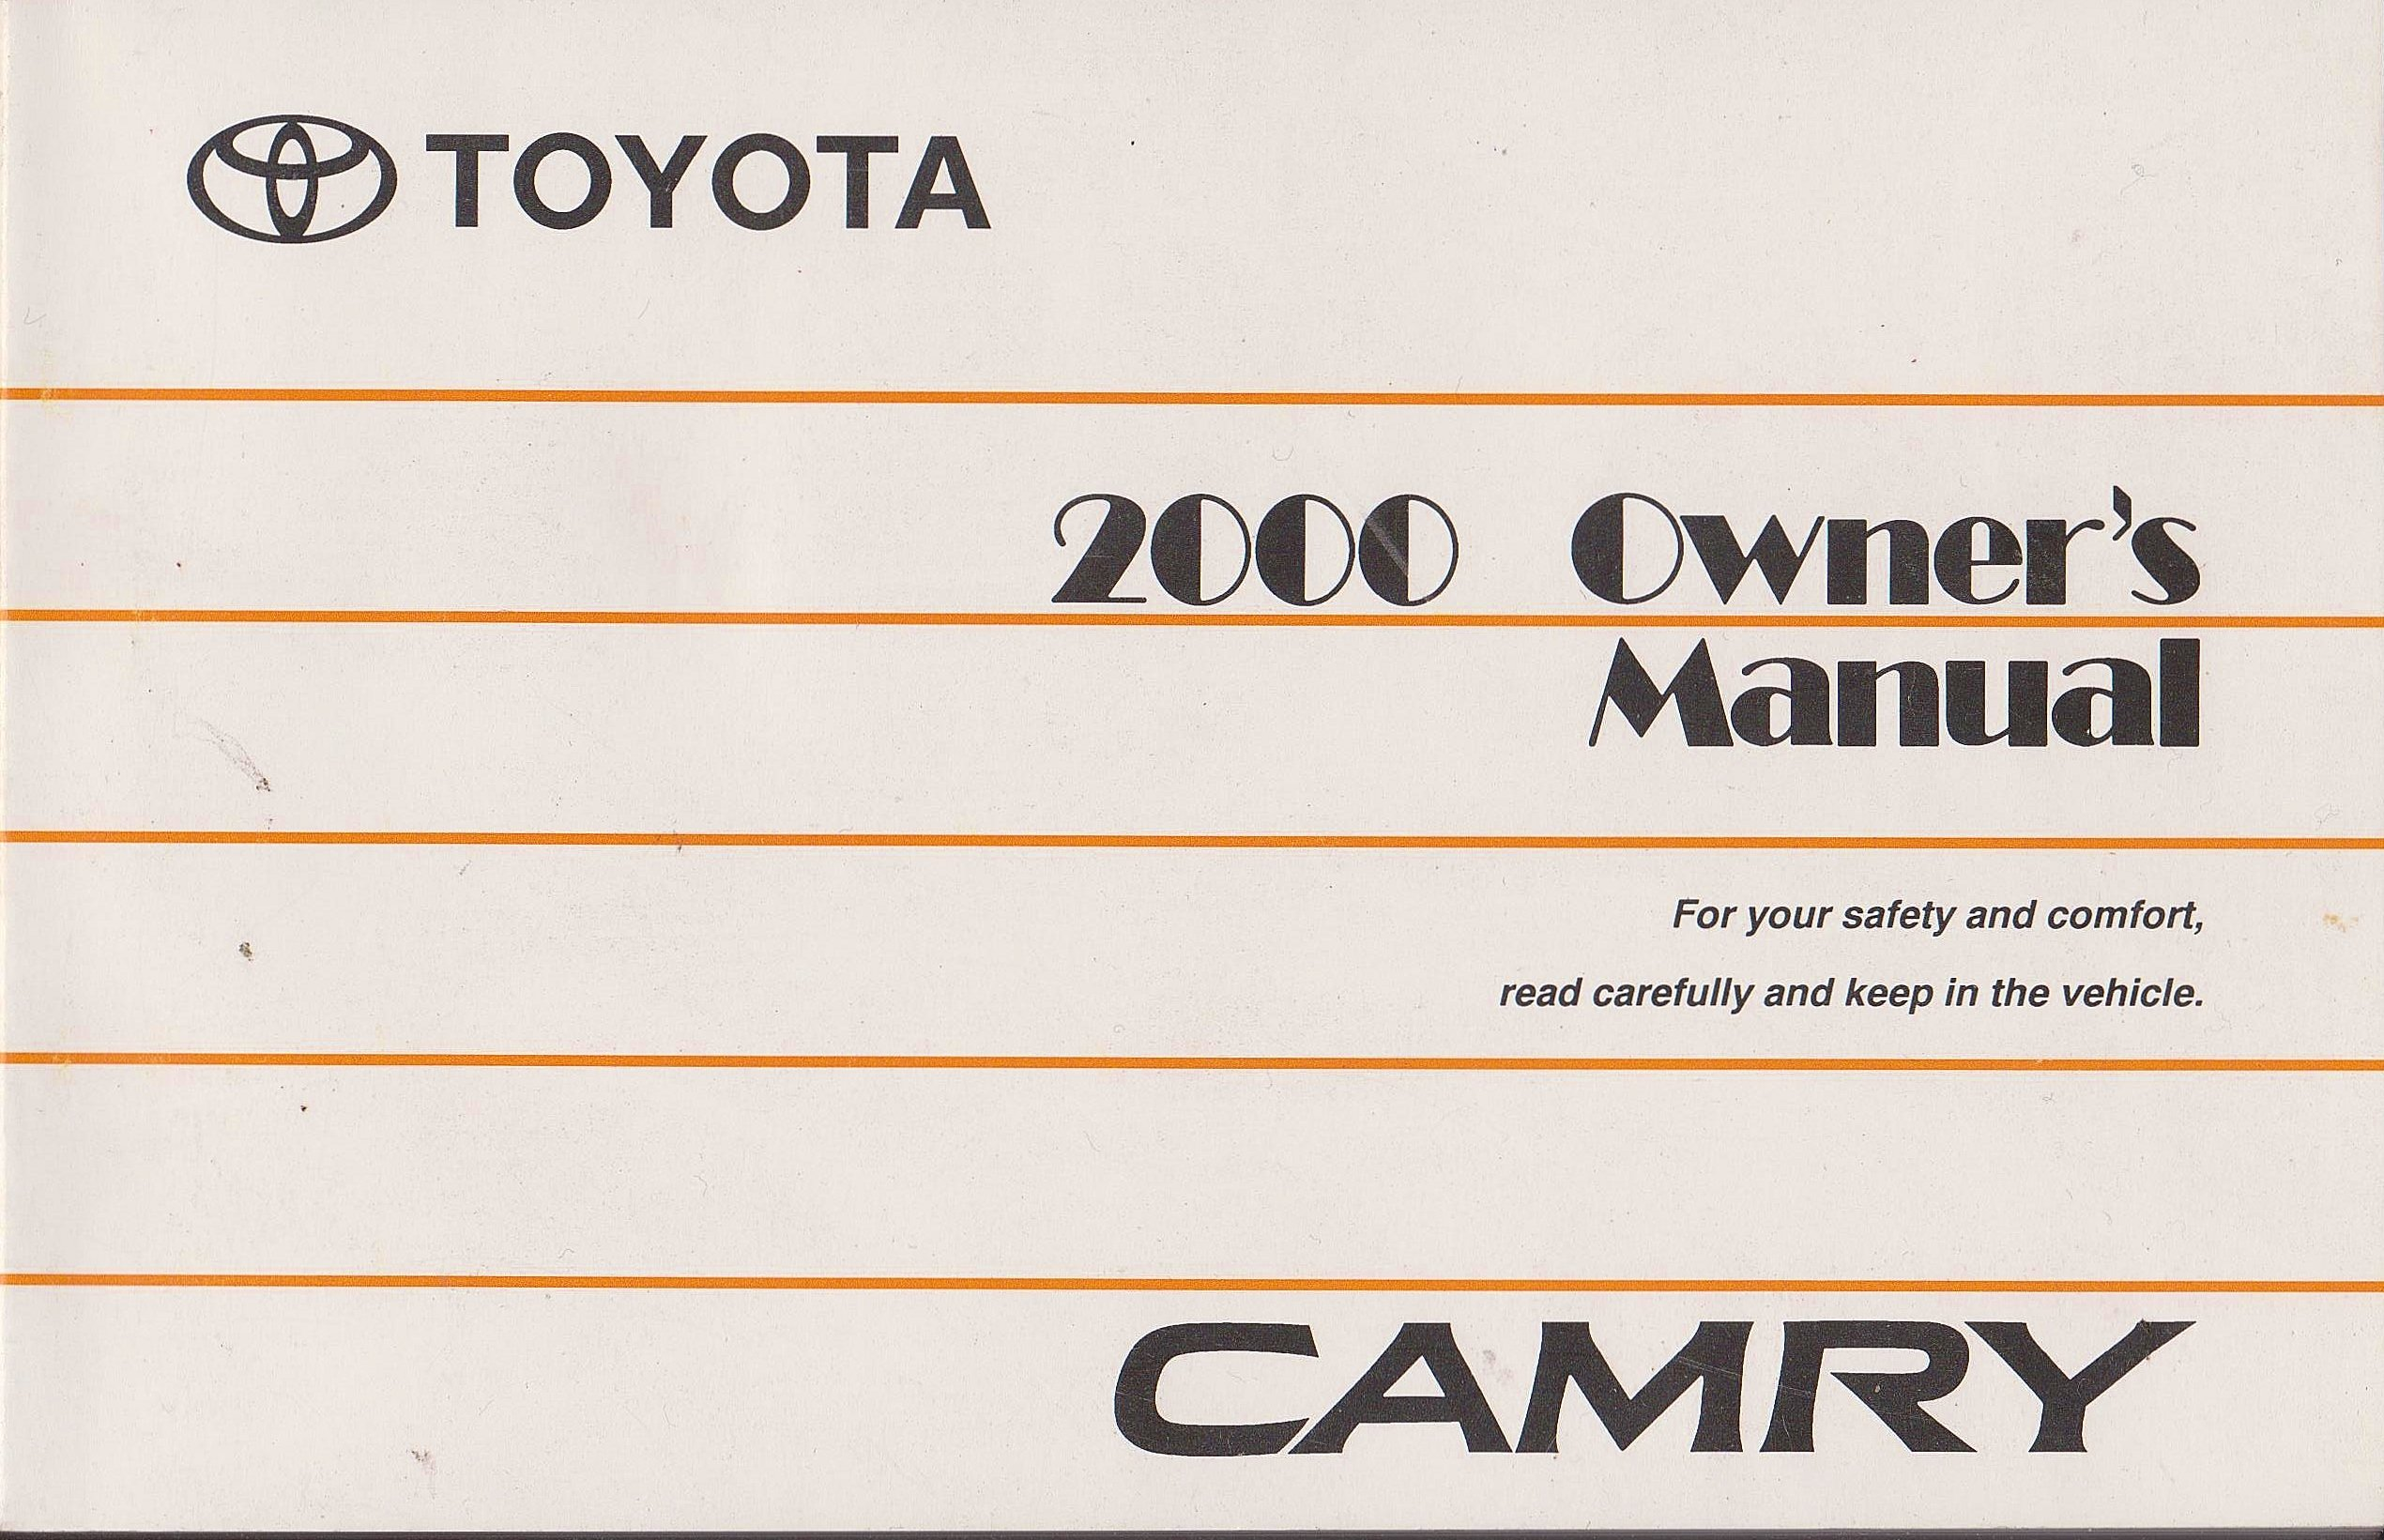 2000 toyota camry owners manual toyota amazon com books rh amazon com 2000 toyota camry factory service manual 2000 toyota camry le repair manual